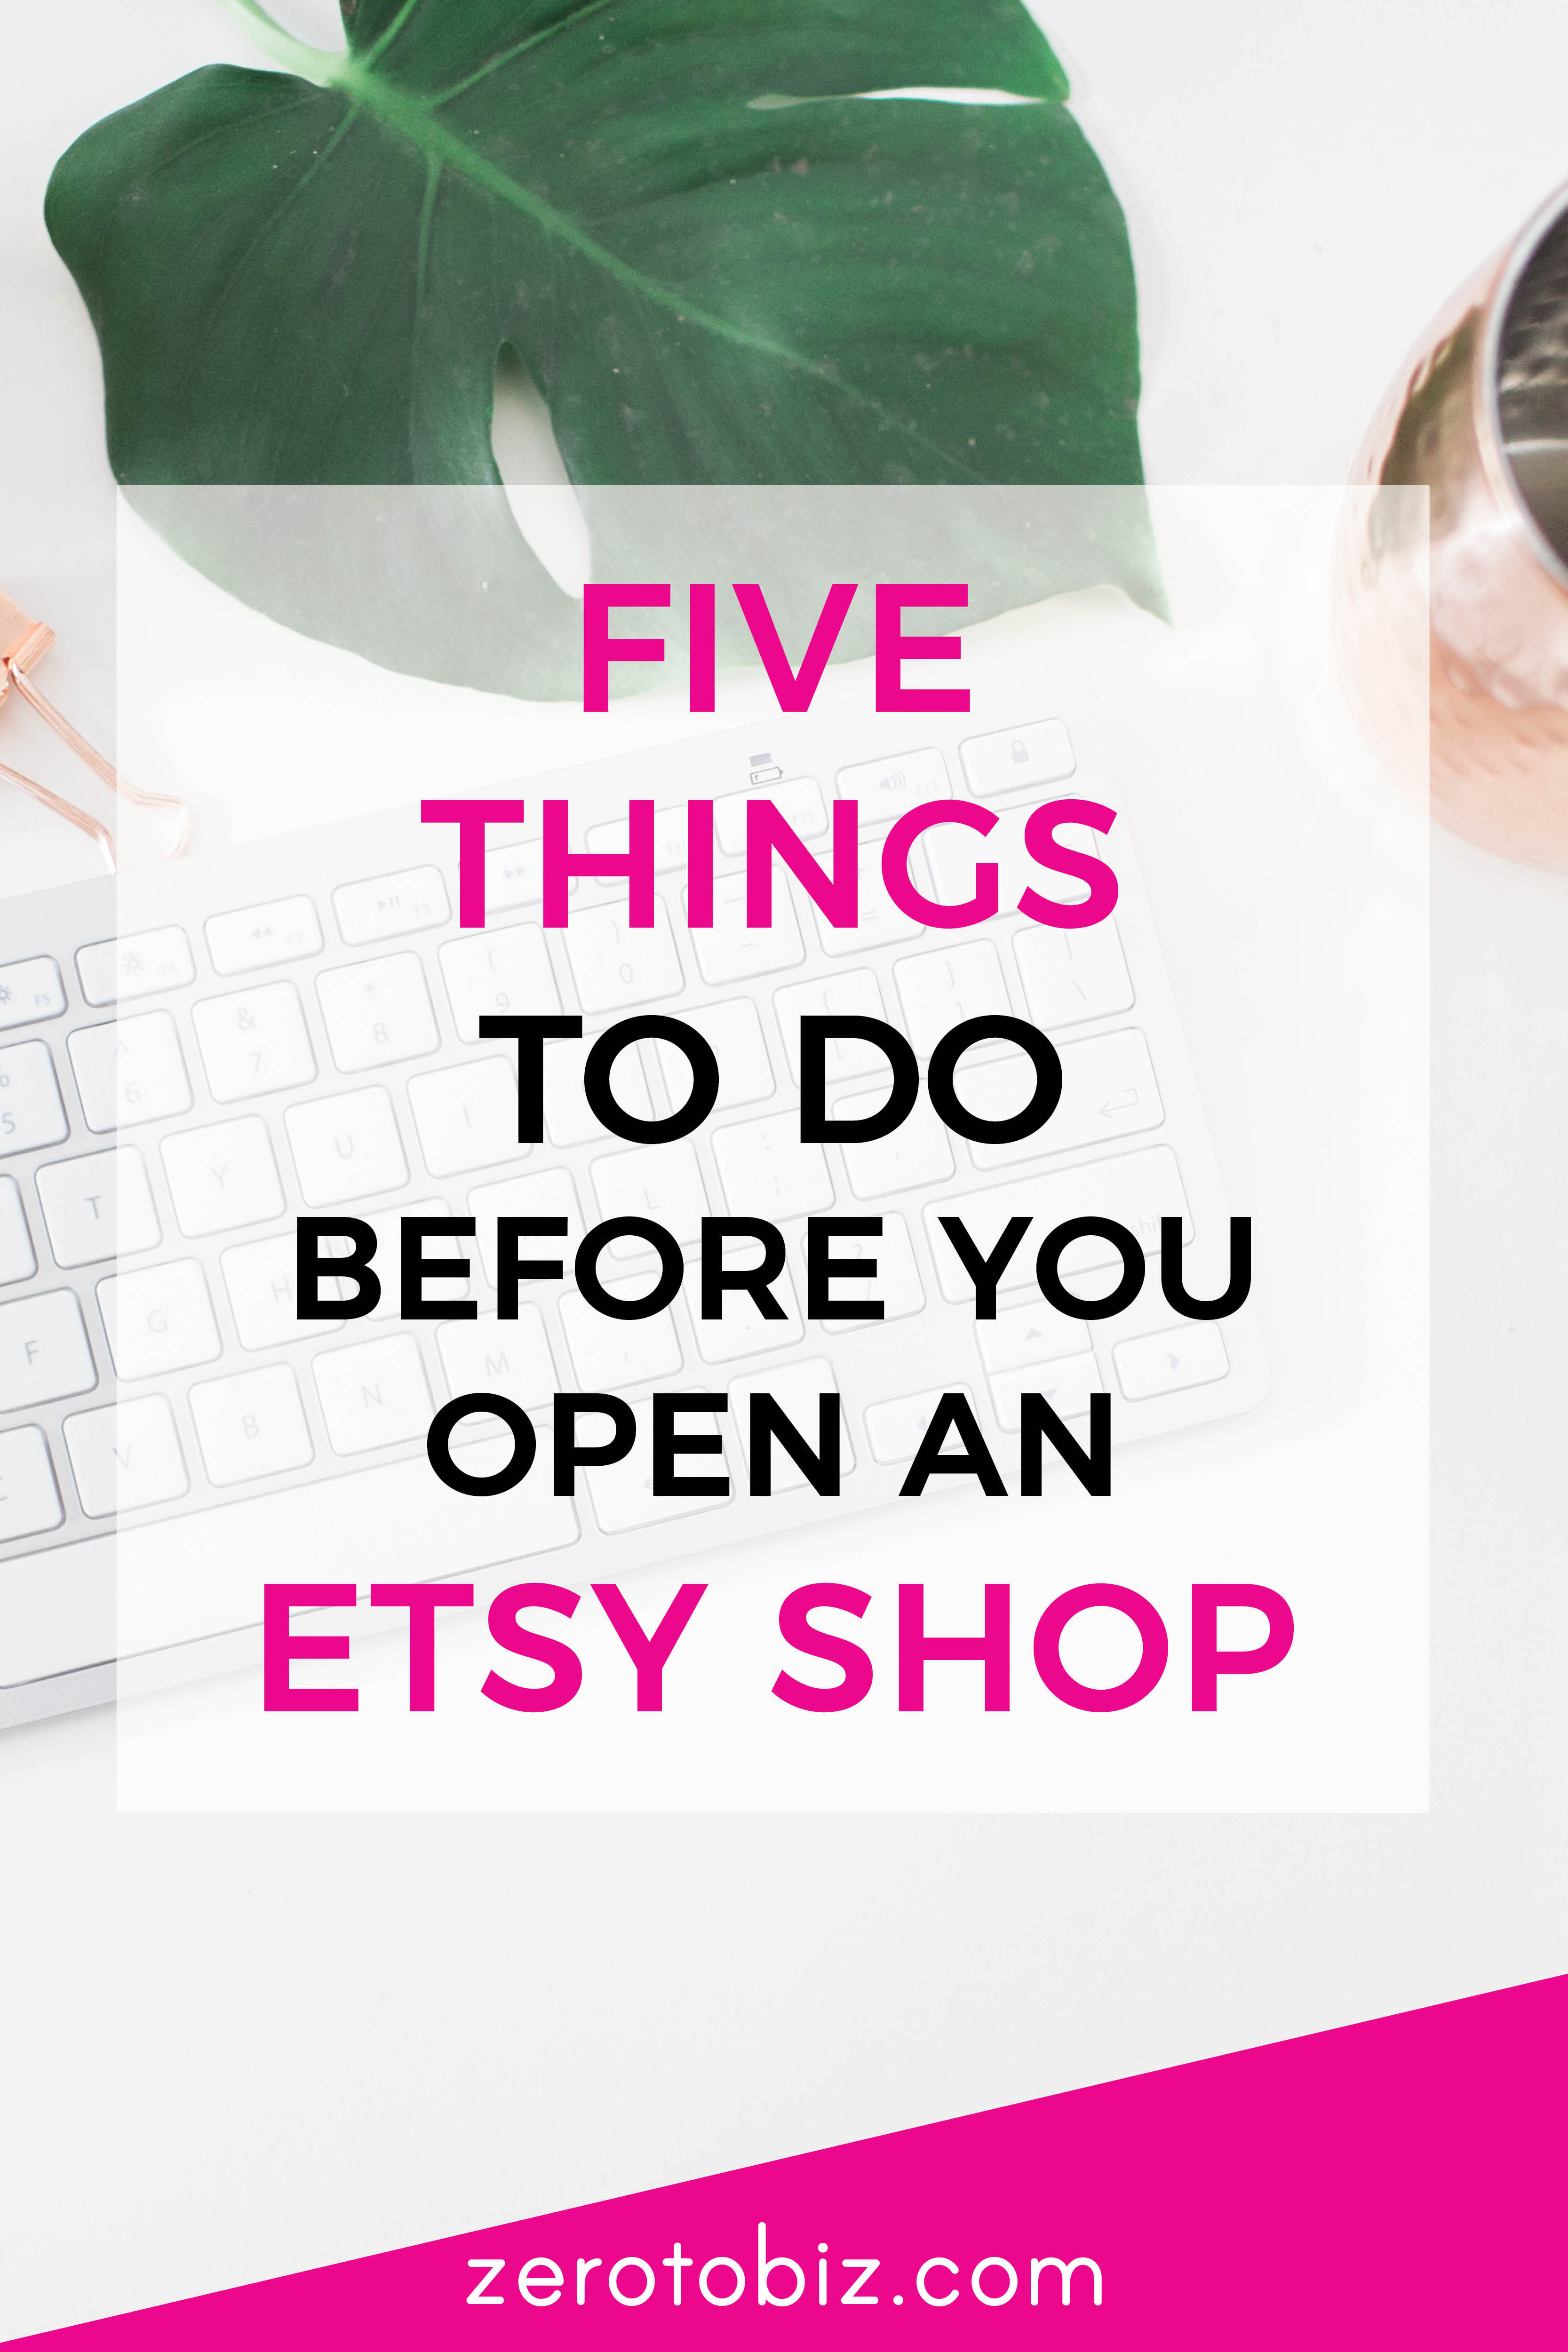 5 Things To Do Before 2018: Five Things To Do Before Opening An Etsy Shop